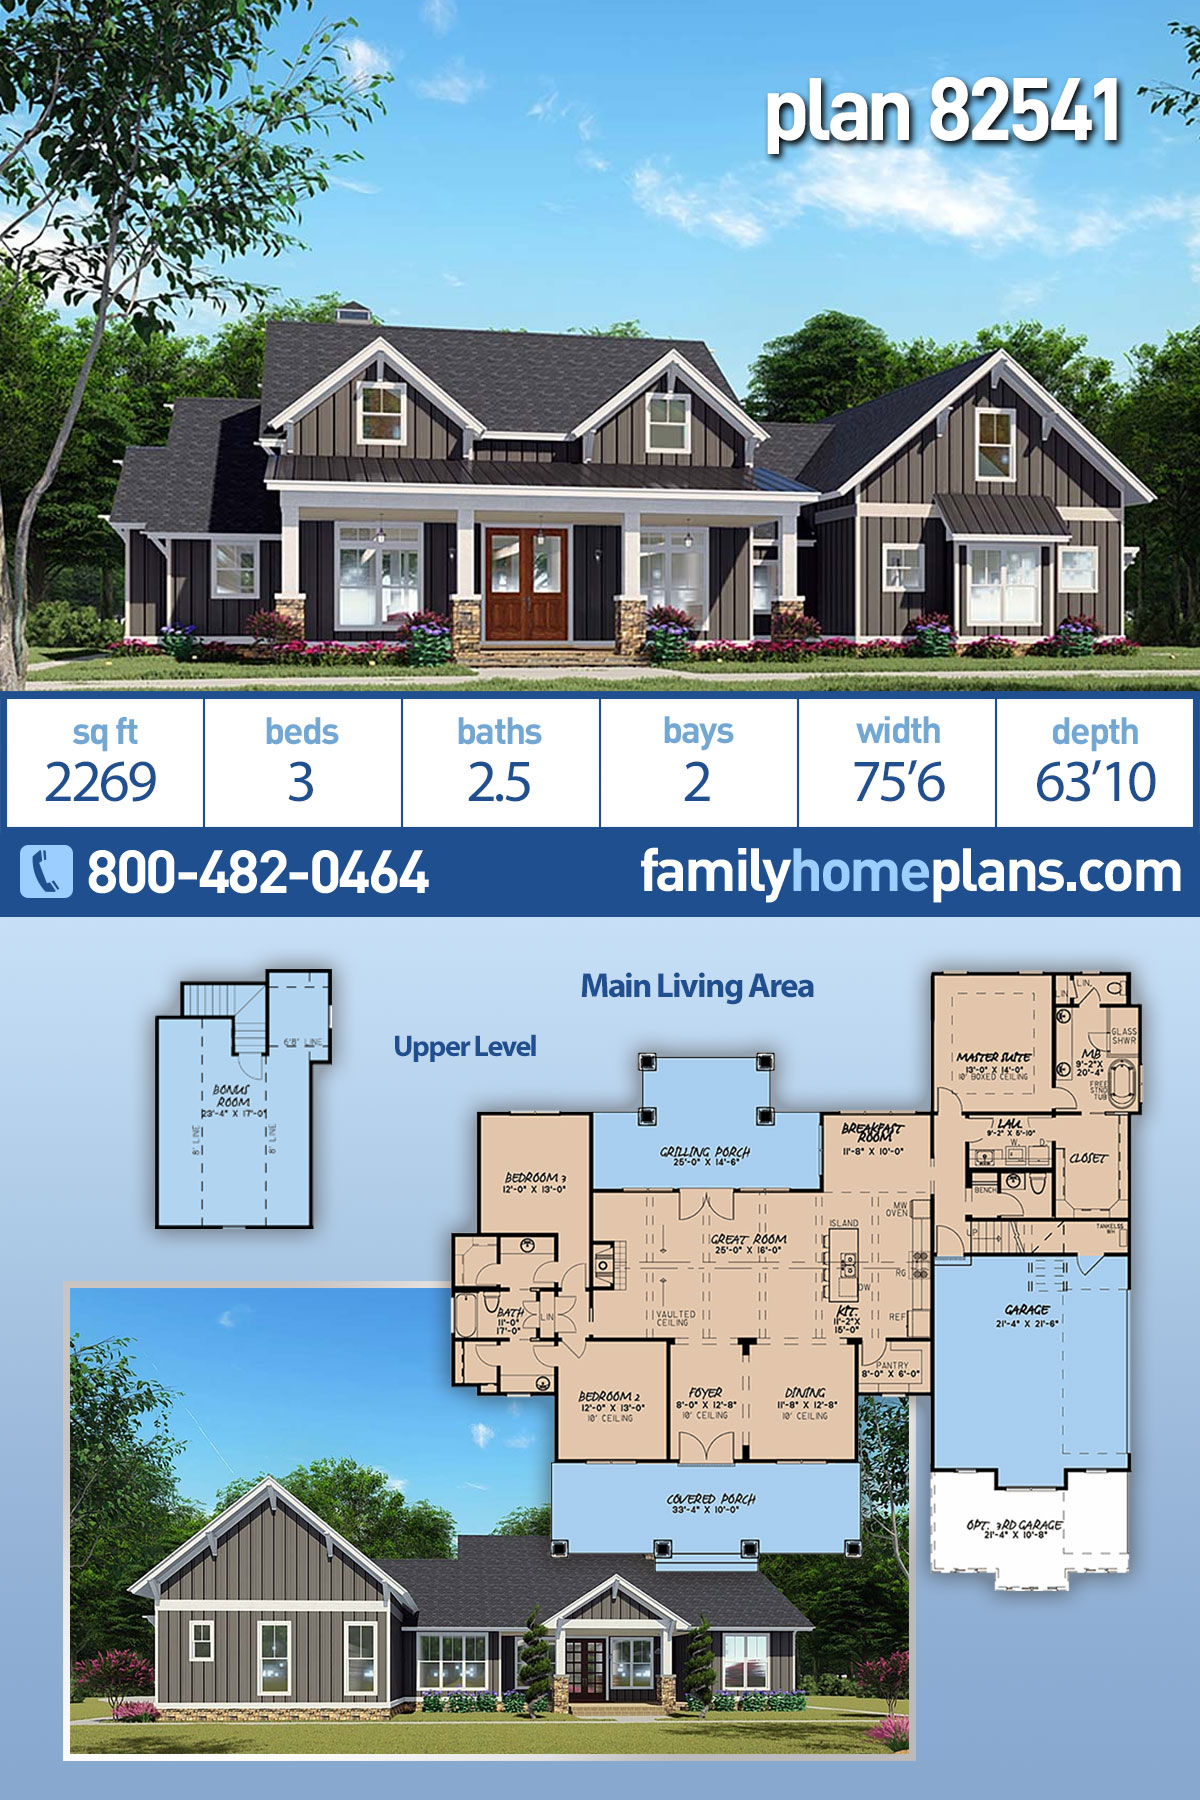 Bungalow, Country, Craftsman, Farmhouse House Plan 82541 with 3 Beds, 3 Baths, 2 Car Garage